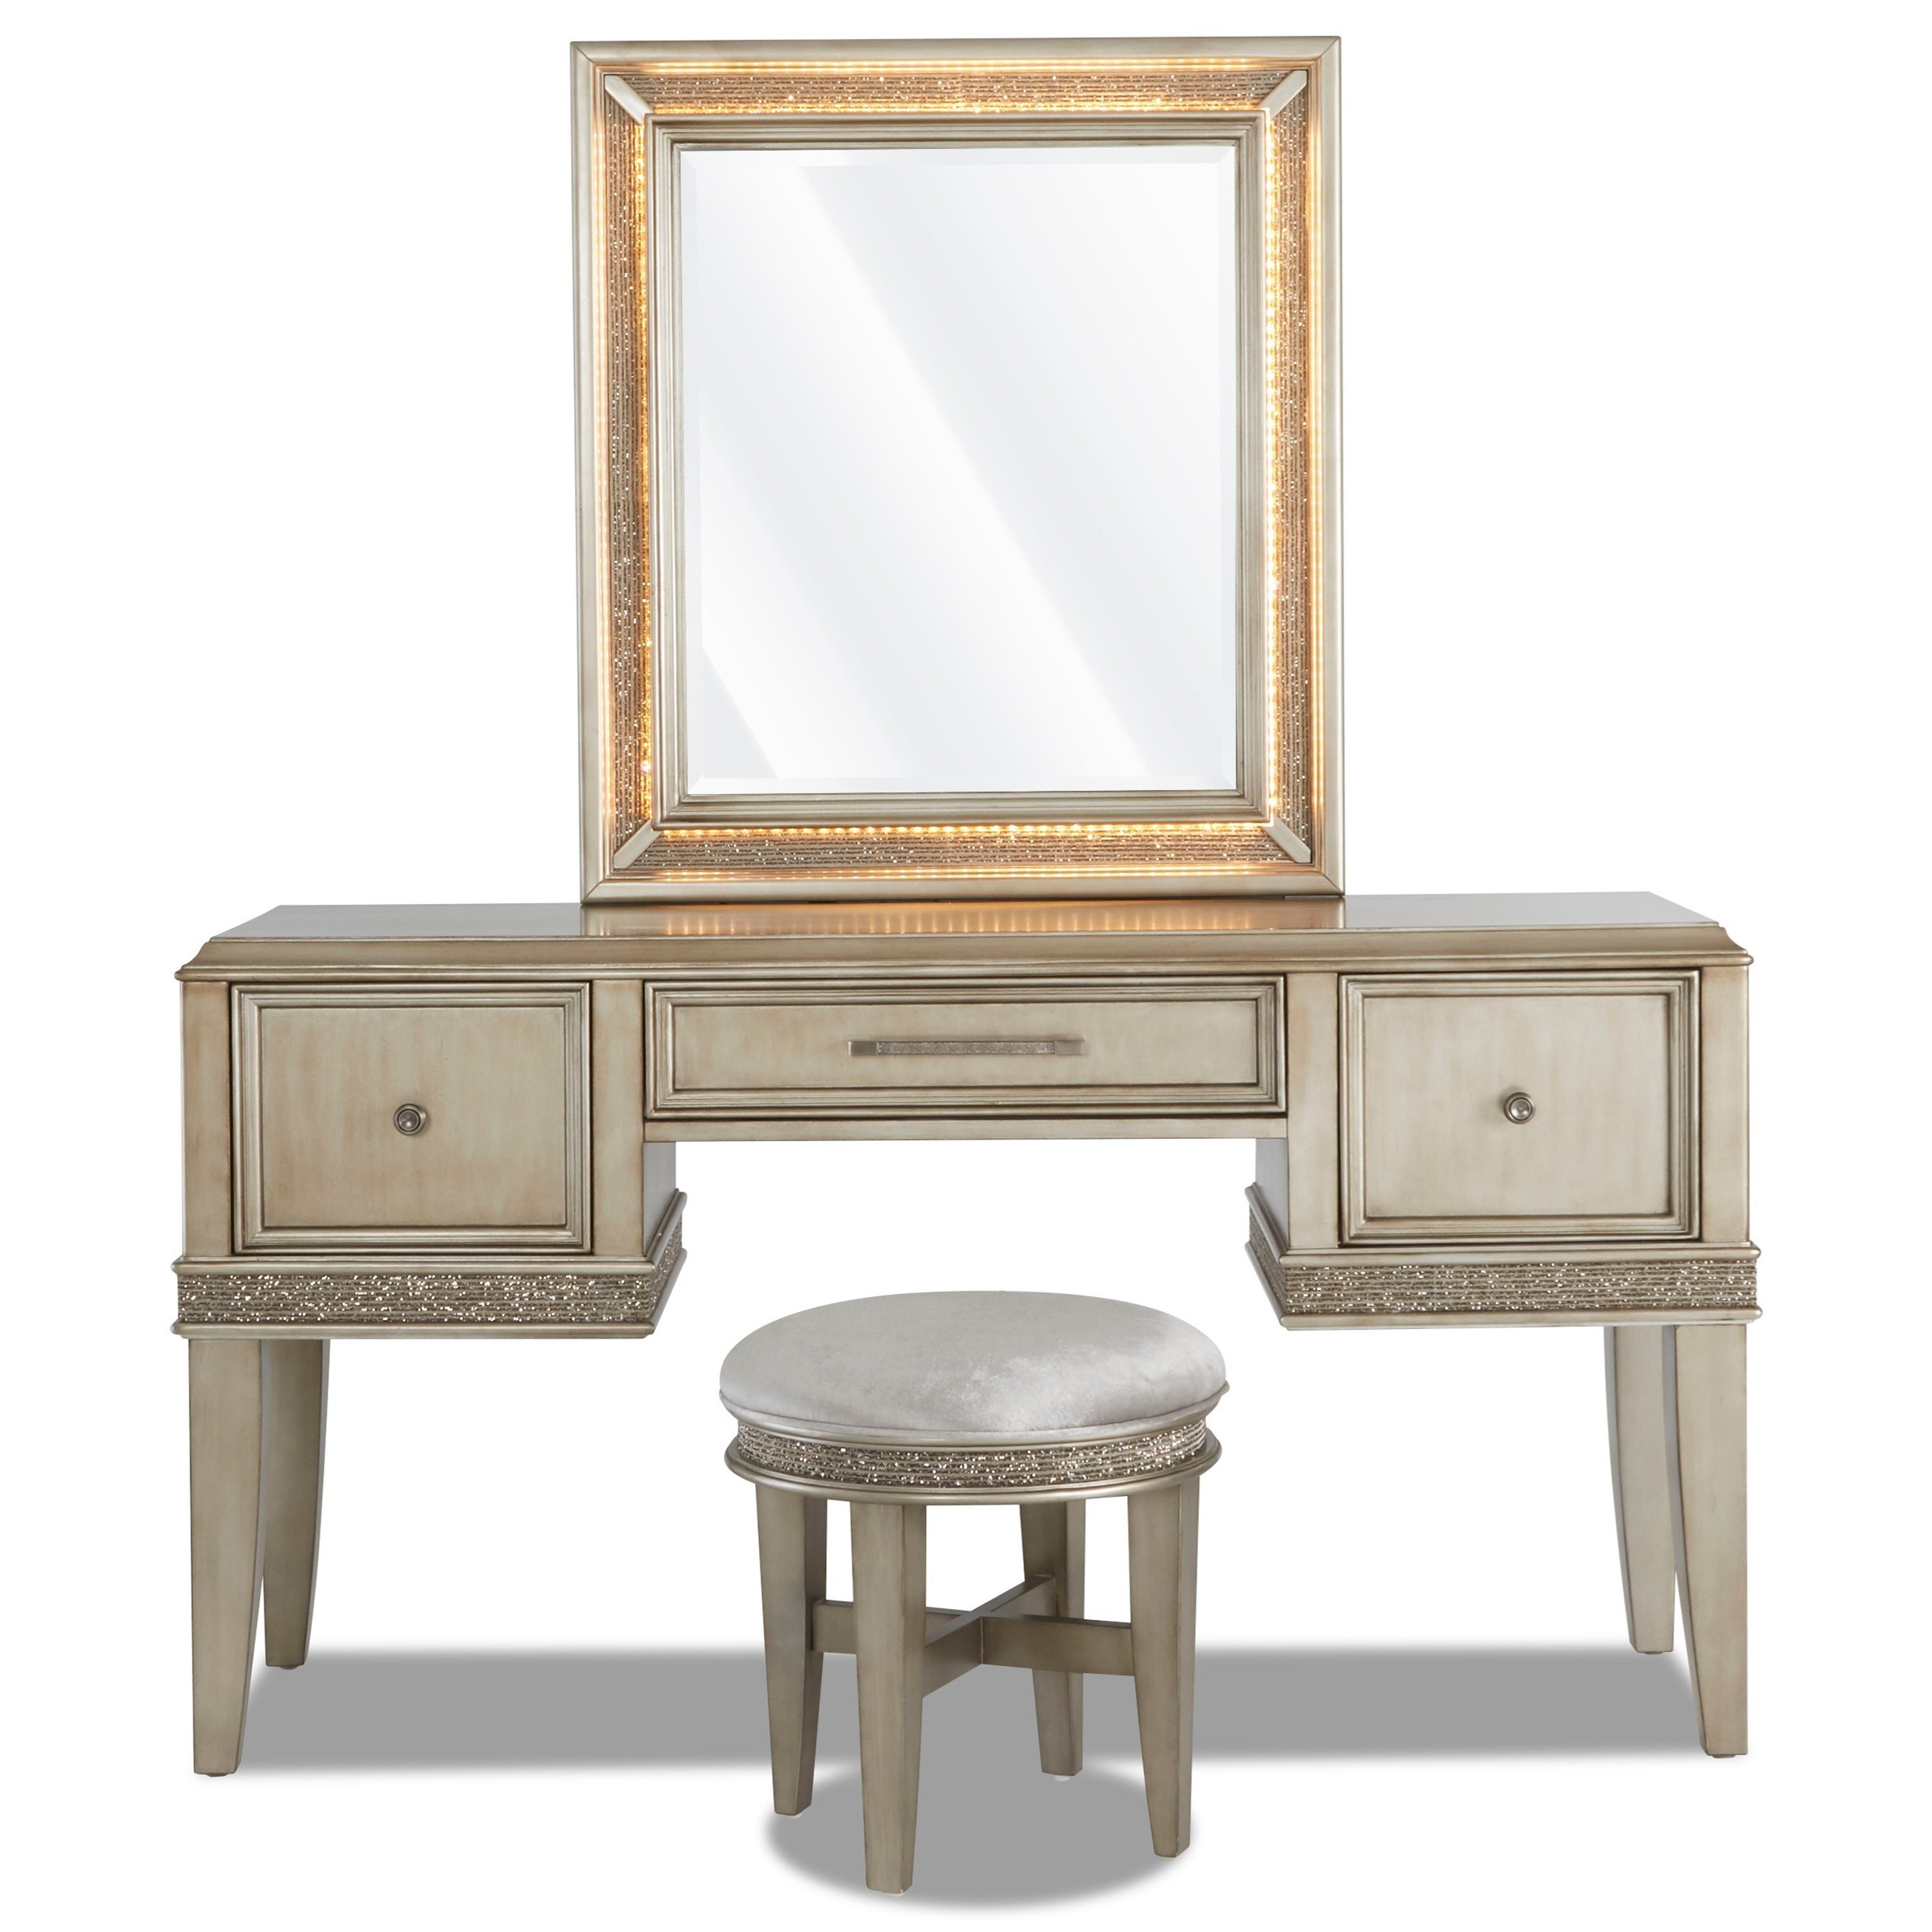 Sophia Vanity, Stool, and Mirror by Klaussner International at Beck's Furniture